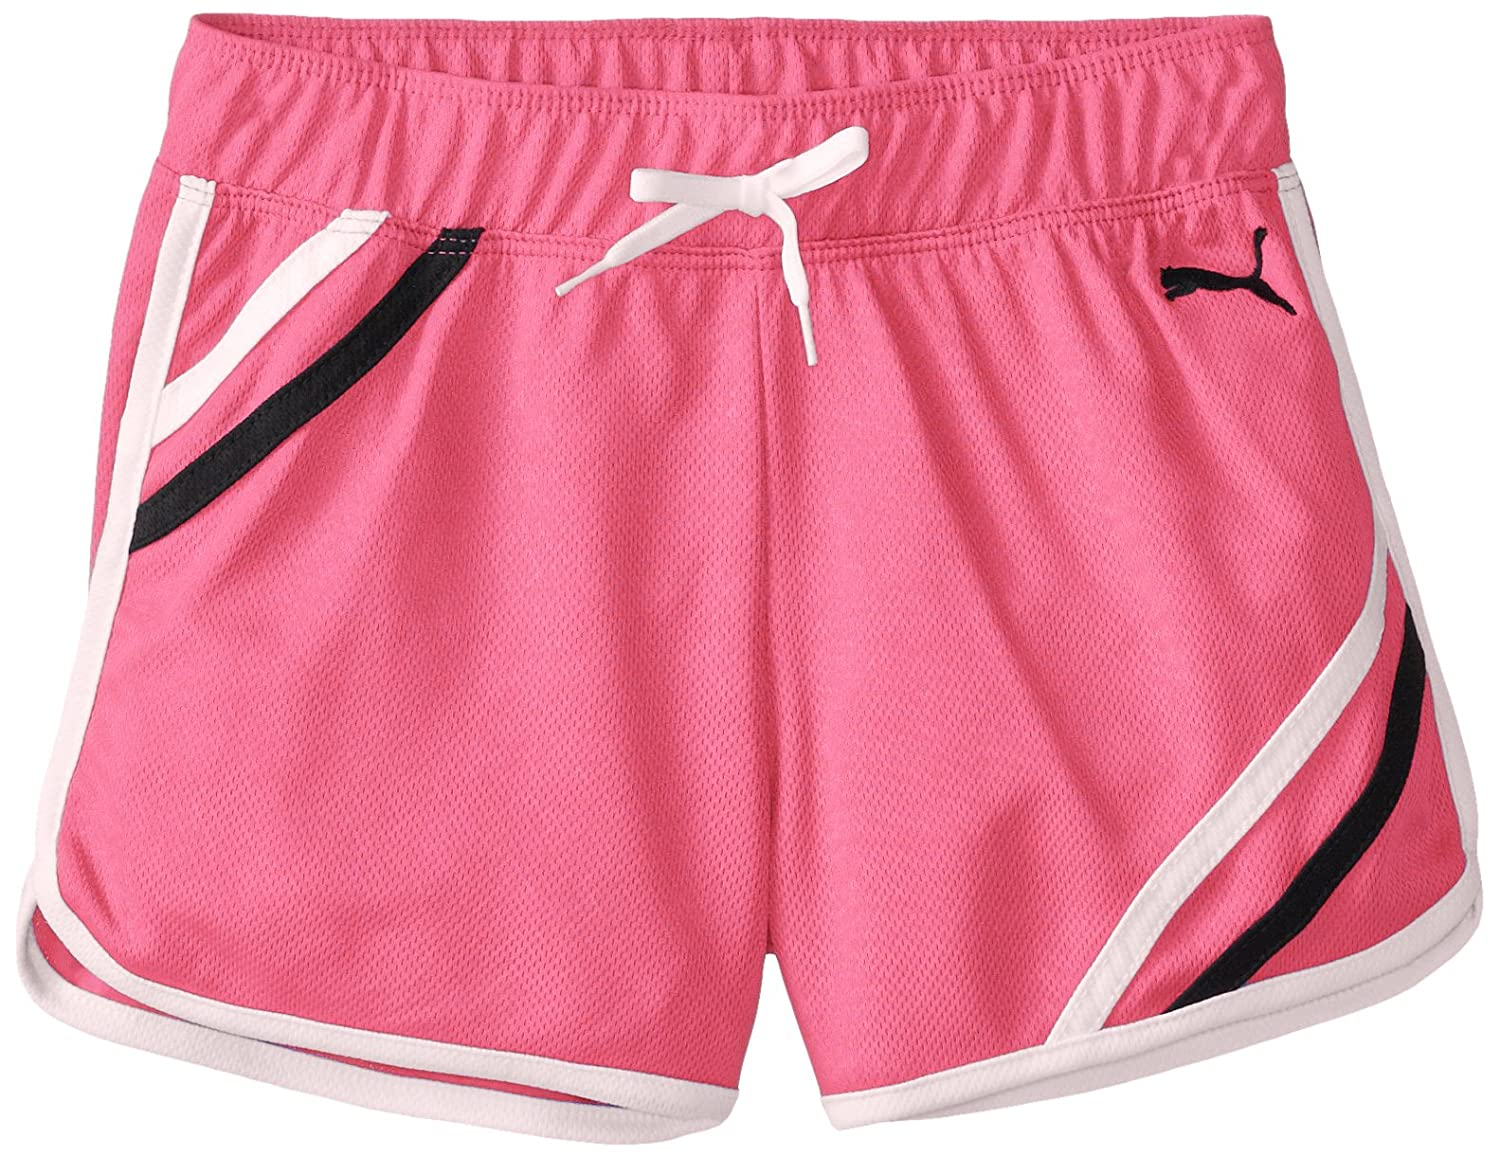 PUMA girls Big Girls Mesh Gym Short With Taping Puma Girls 7-16 PGH43347